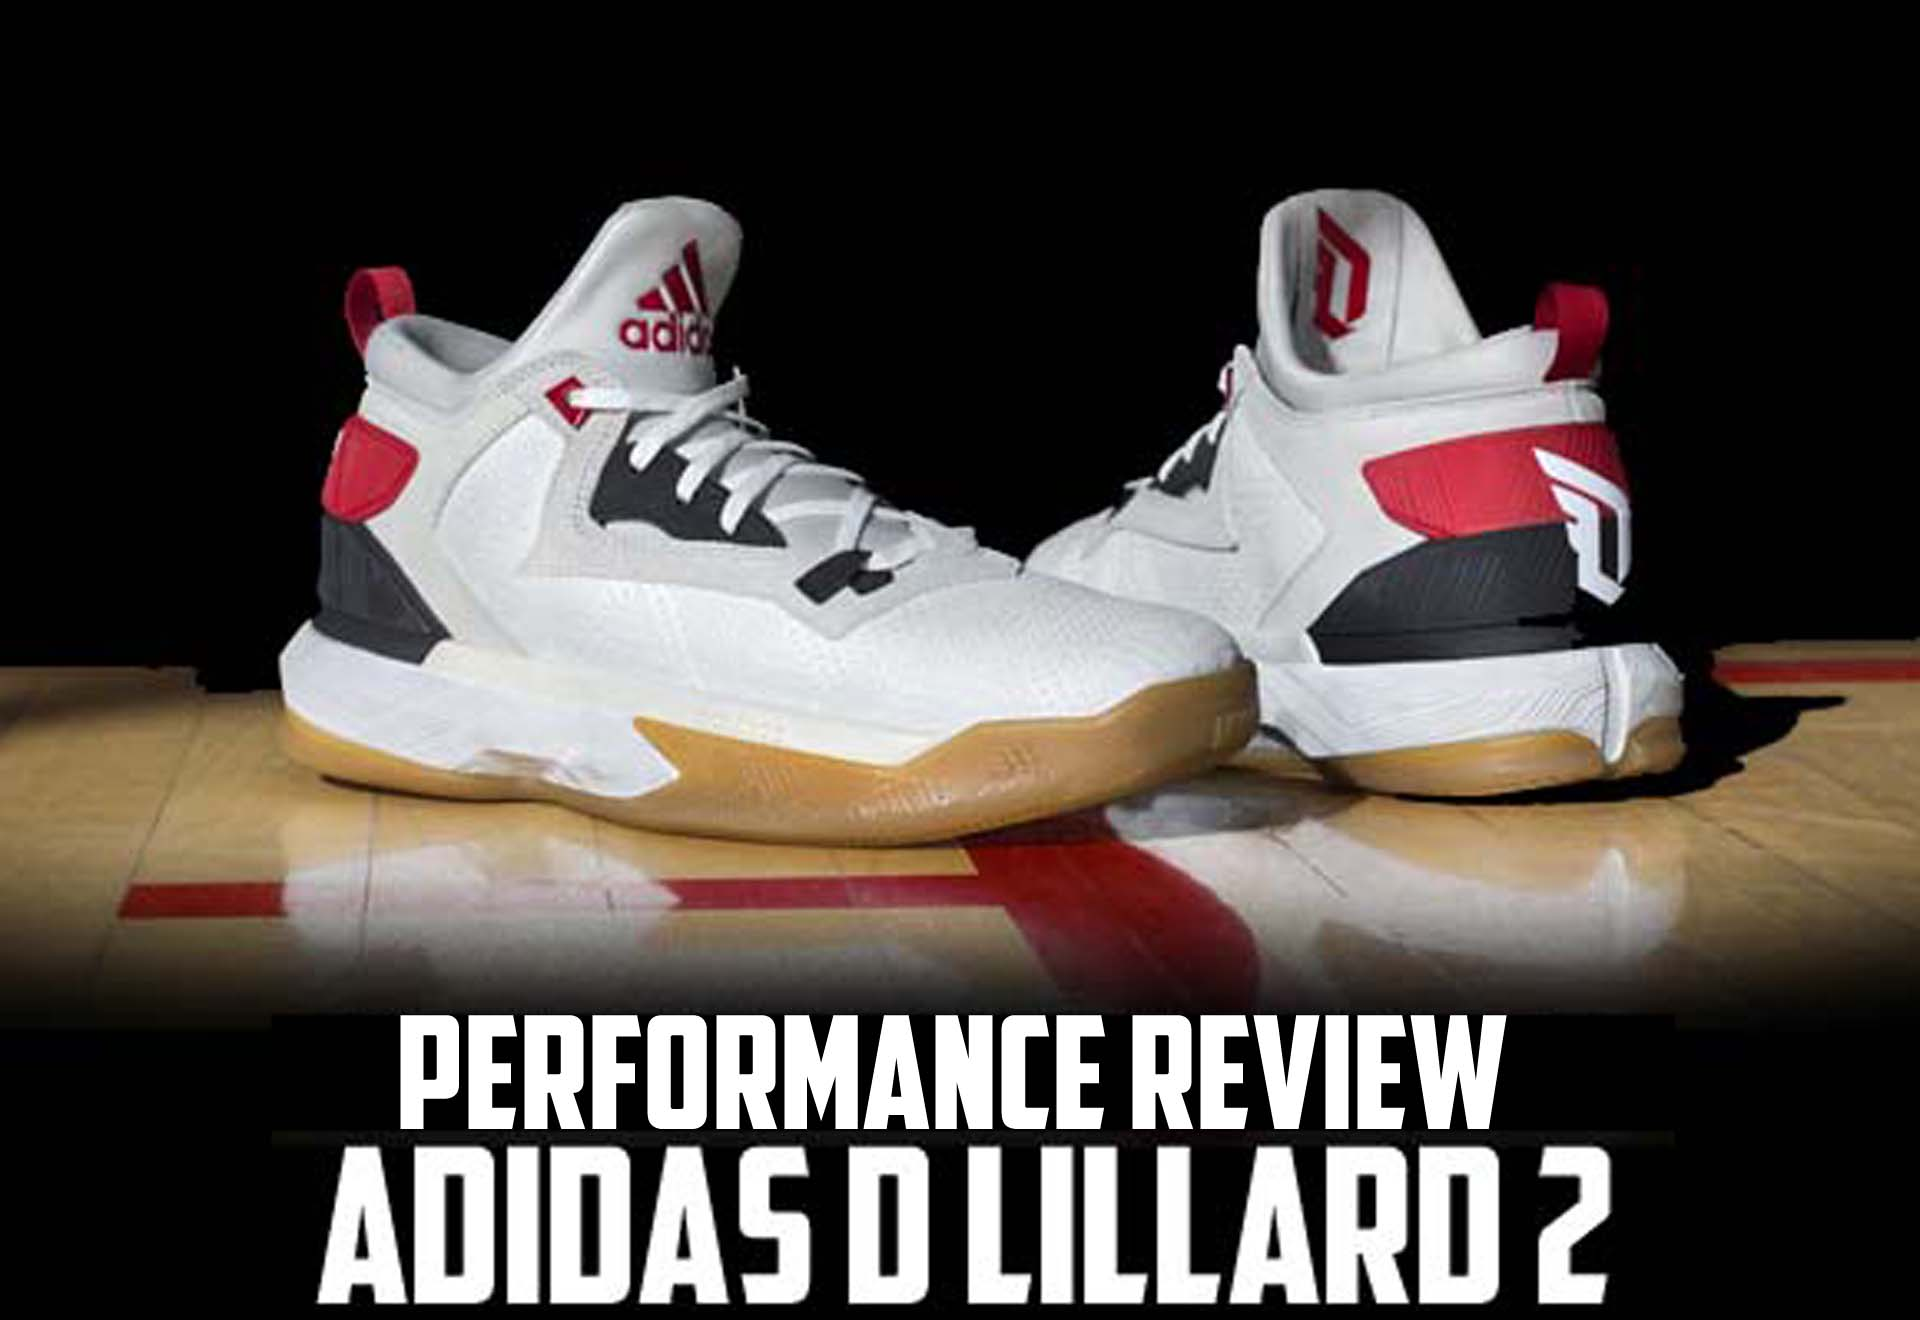 adidas d lillard 2 performance review main